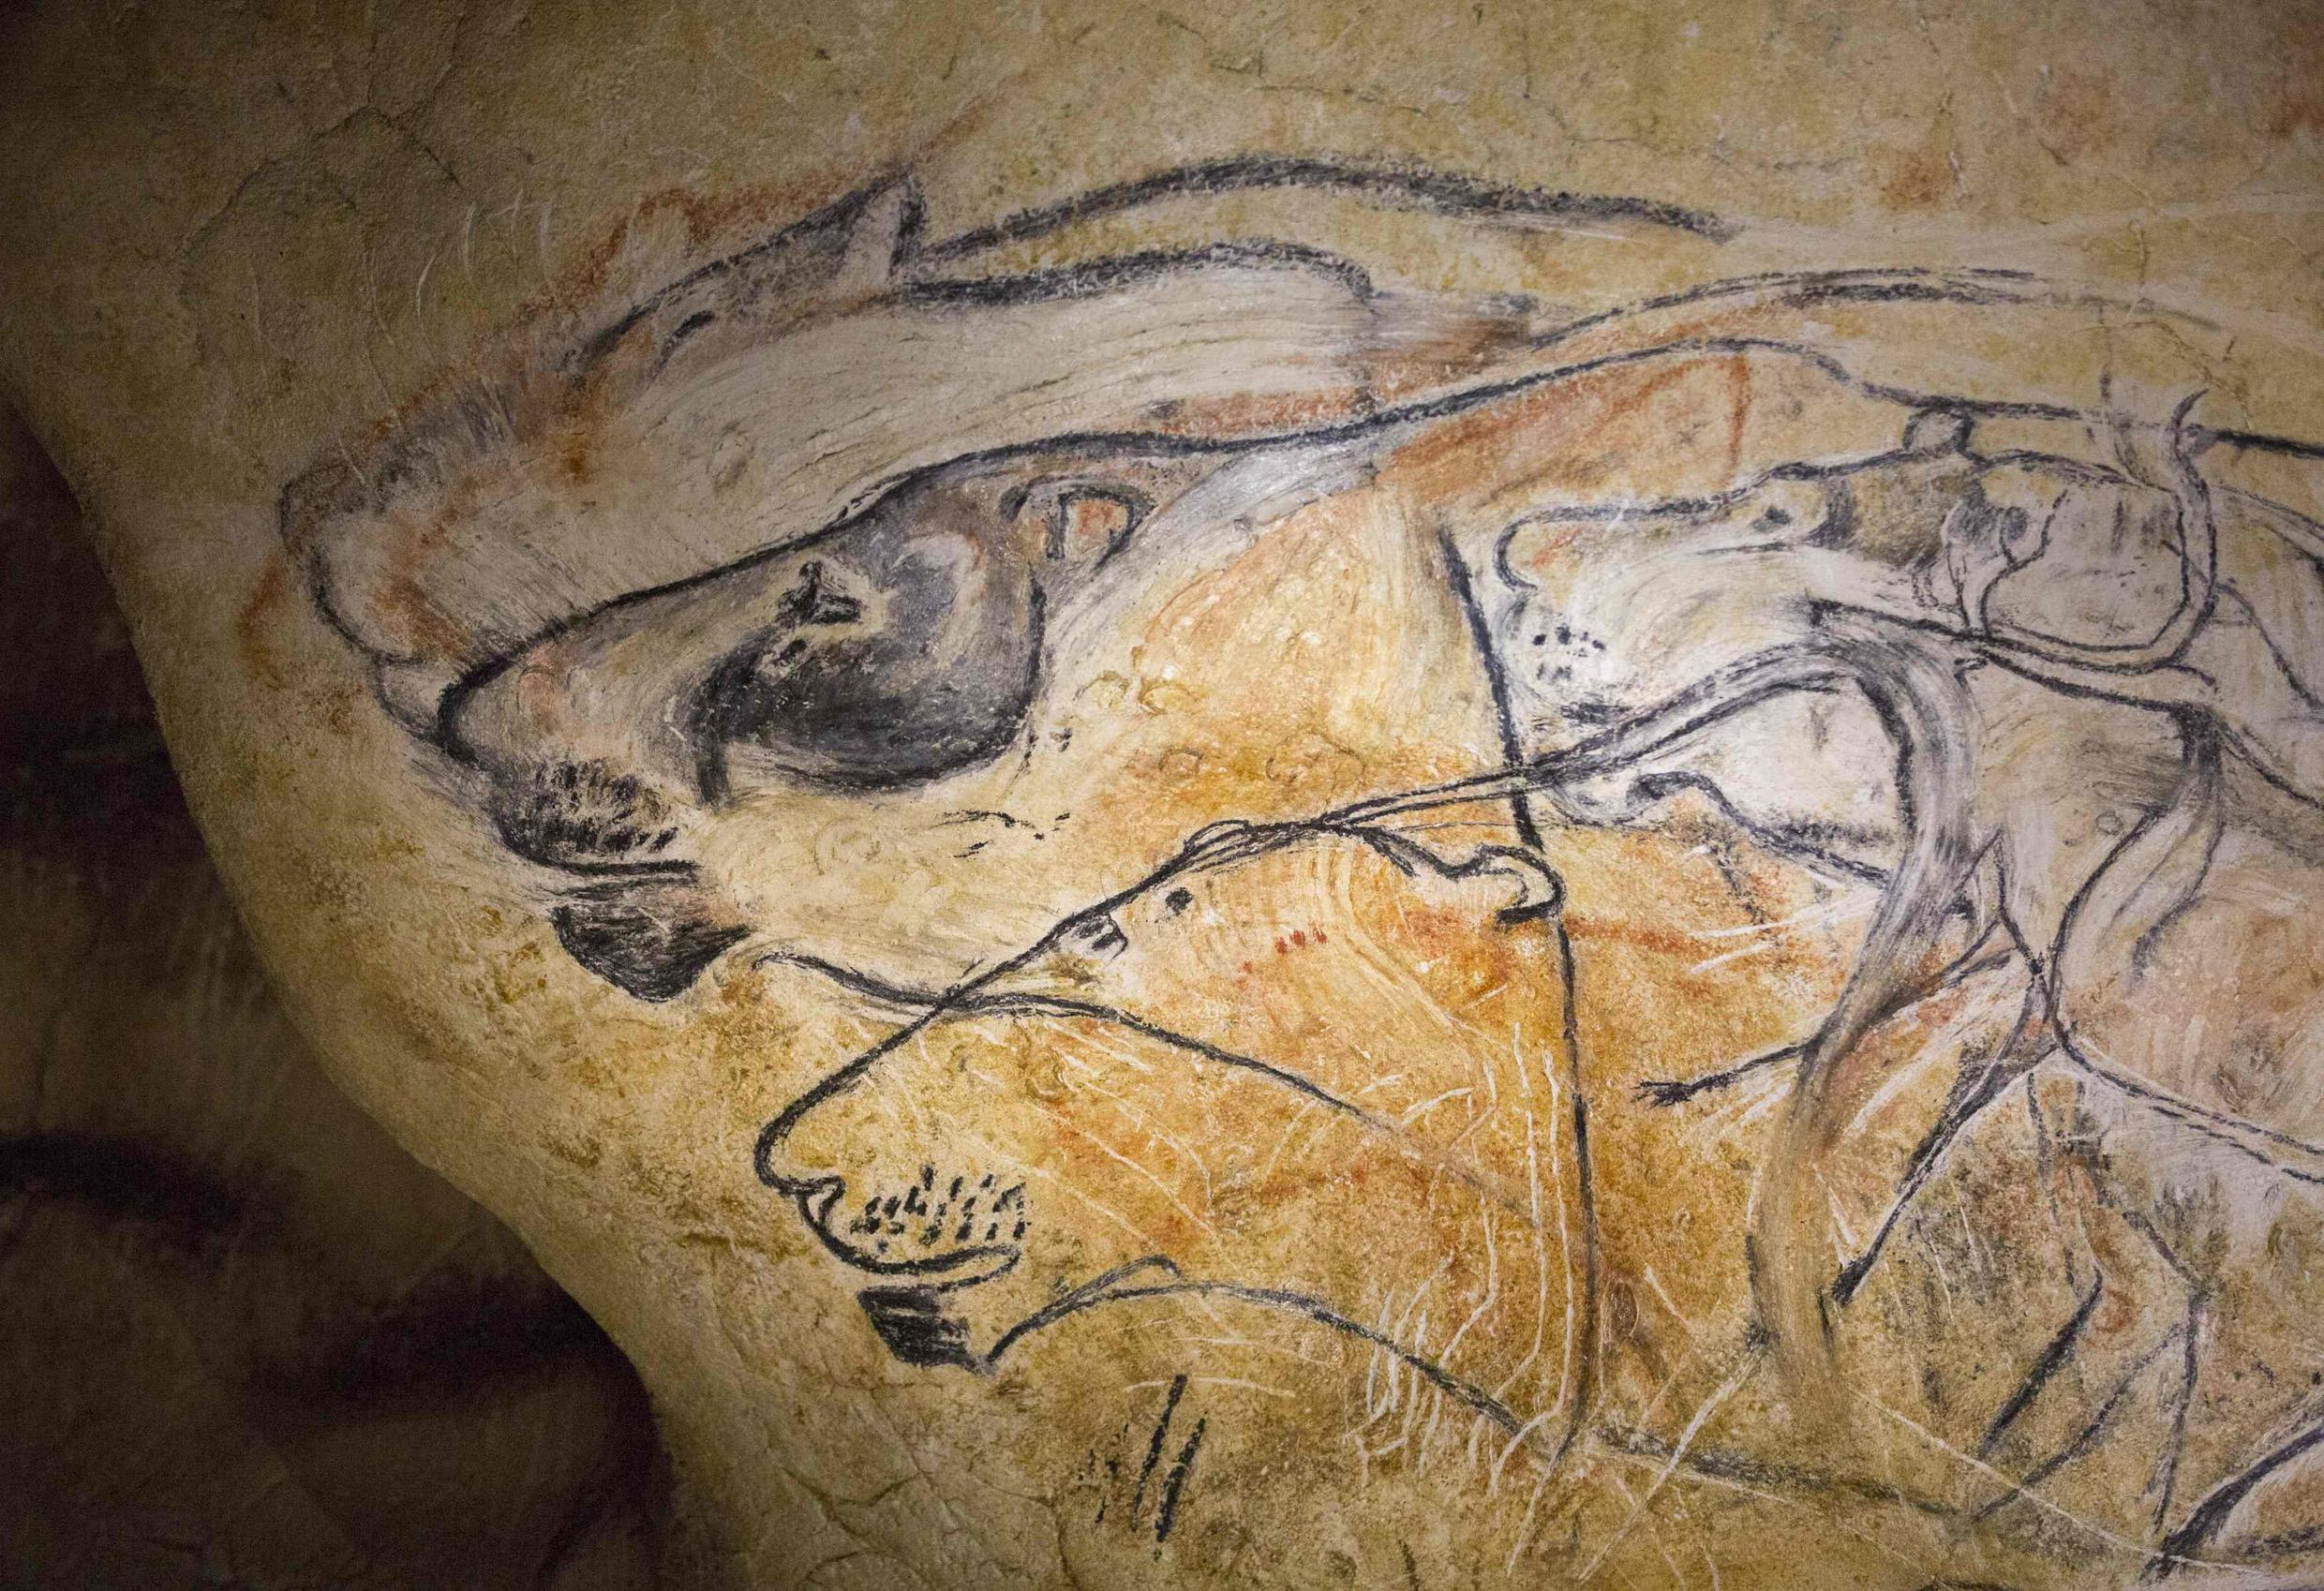 Drawings showing lions in the replica of the Chauvet Caves, Vallon Pont-d'Arc in the Ardeche region, 8 April 2015.